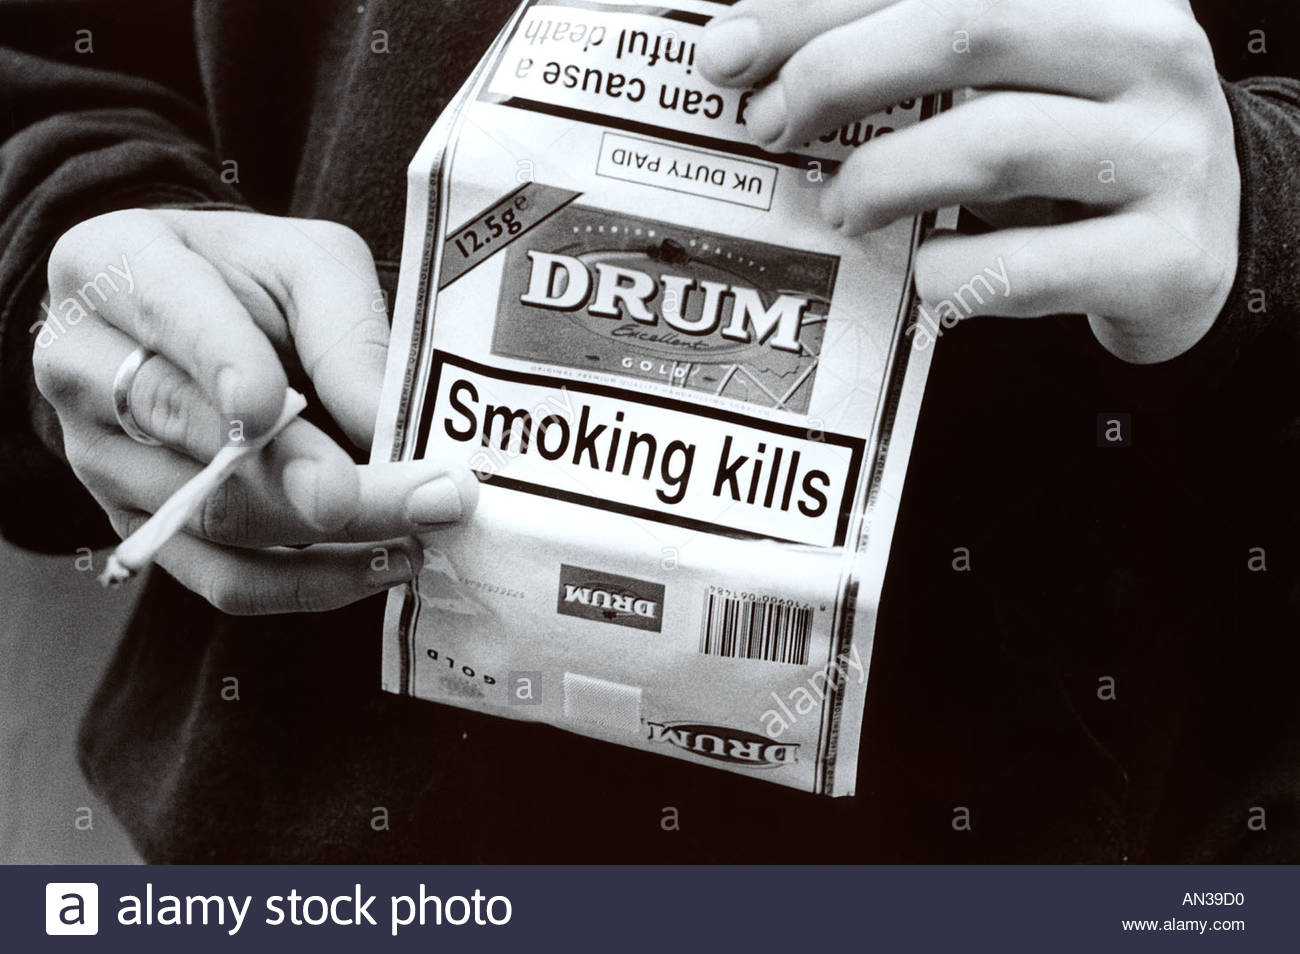 Young man holding packet of Drum roll tobacco and smoking roll up cigarette UK - Stock Image